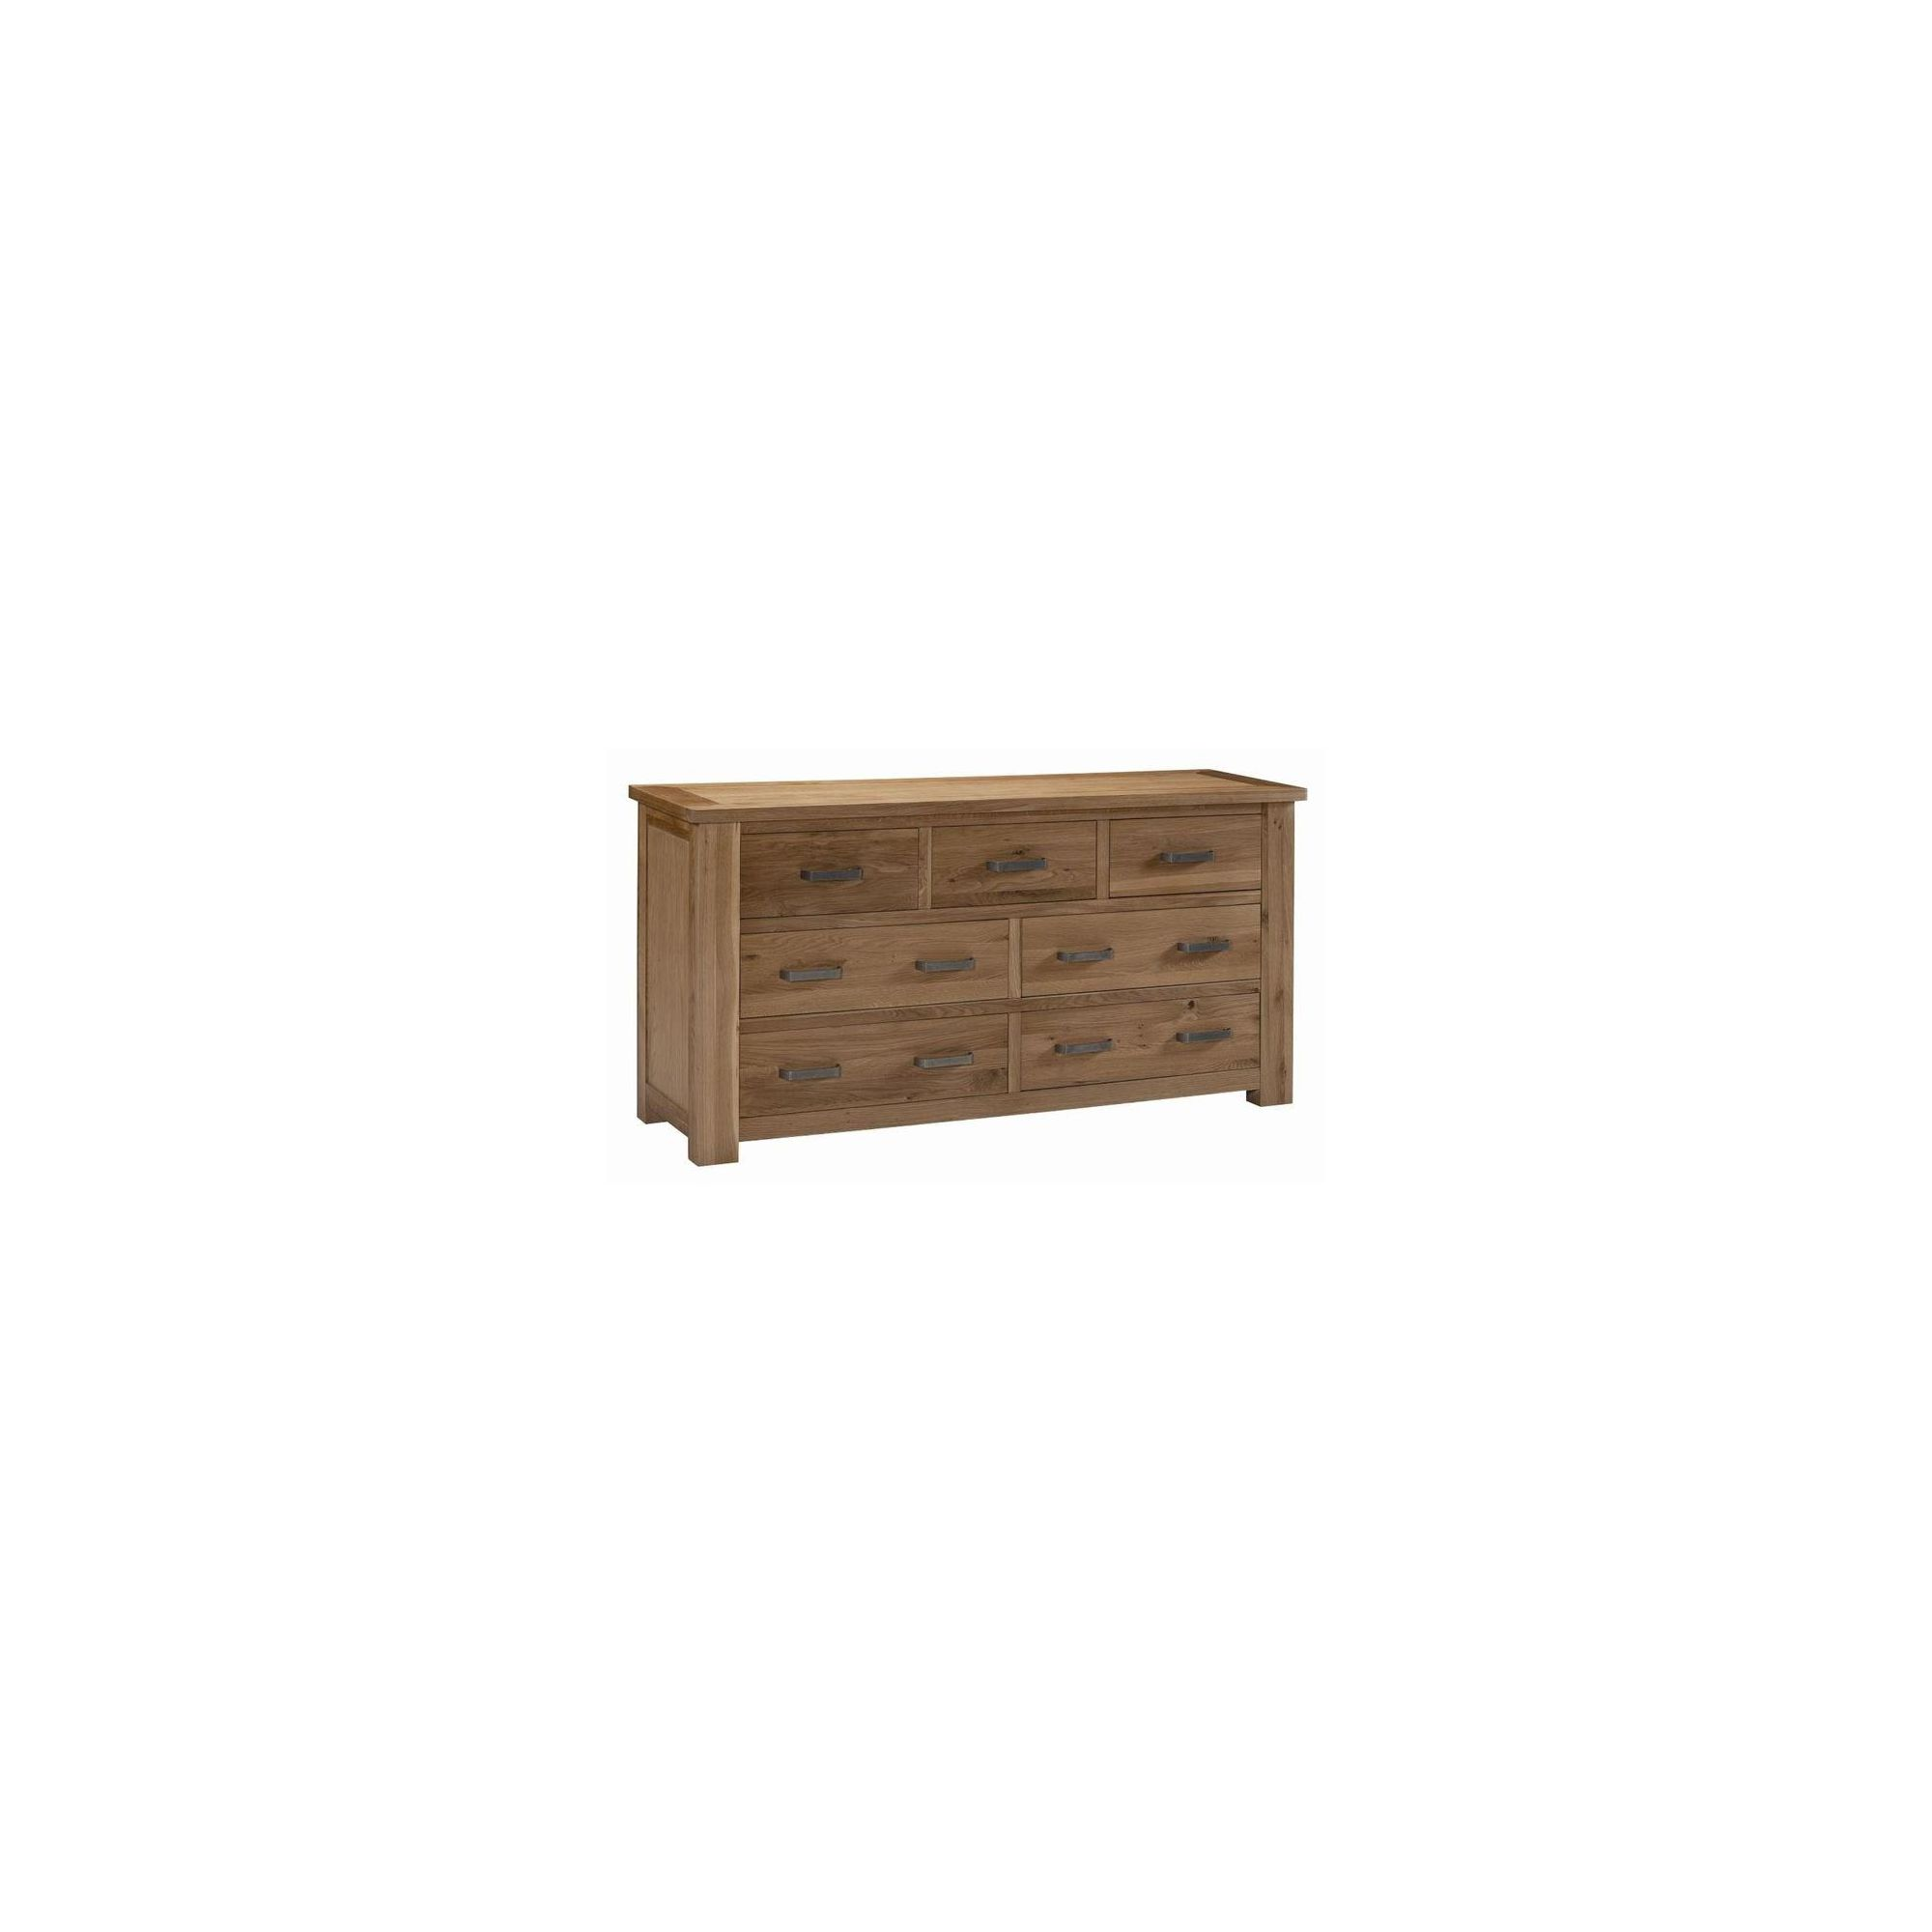 Kelburn Furniture Lyon 7 Drawer Chest at Tesco Direct